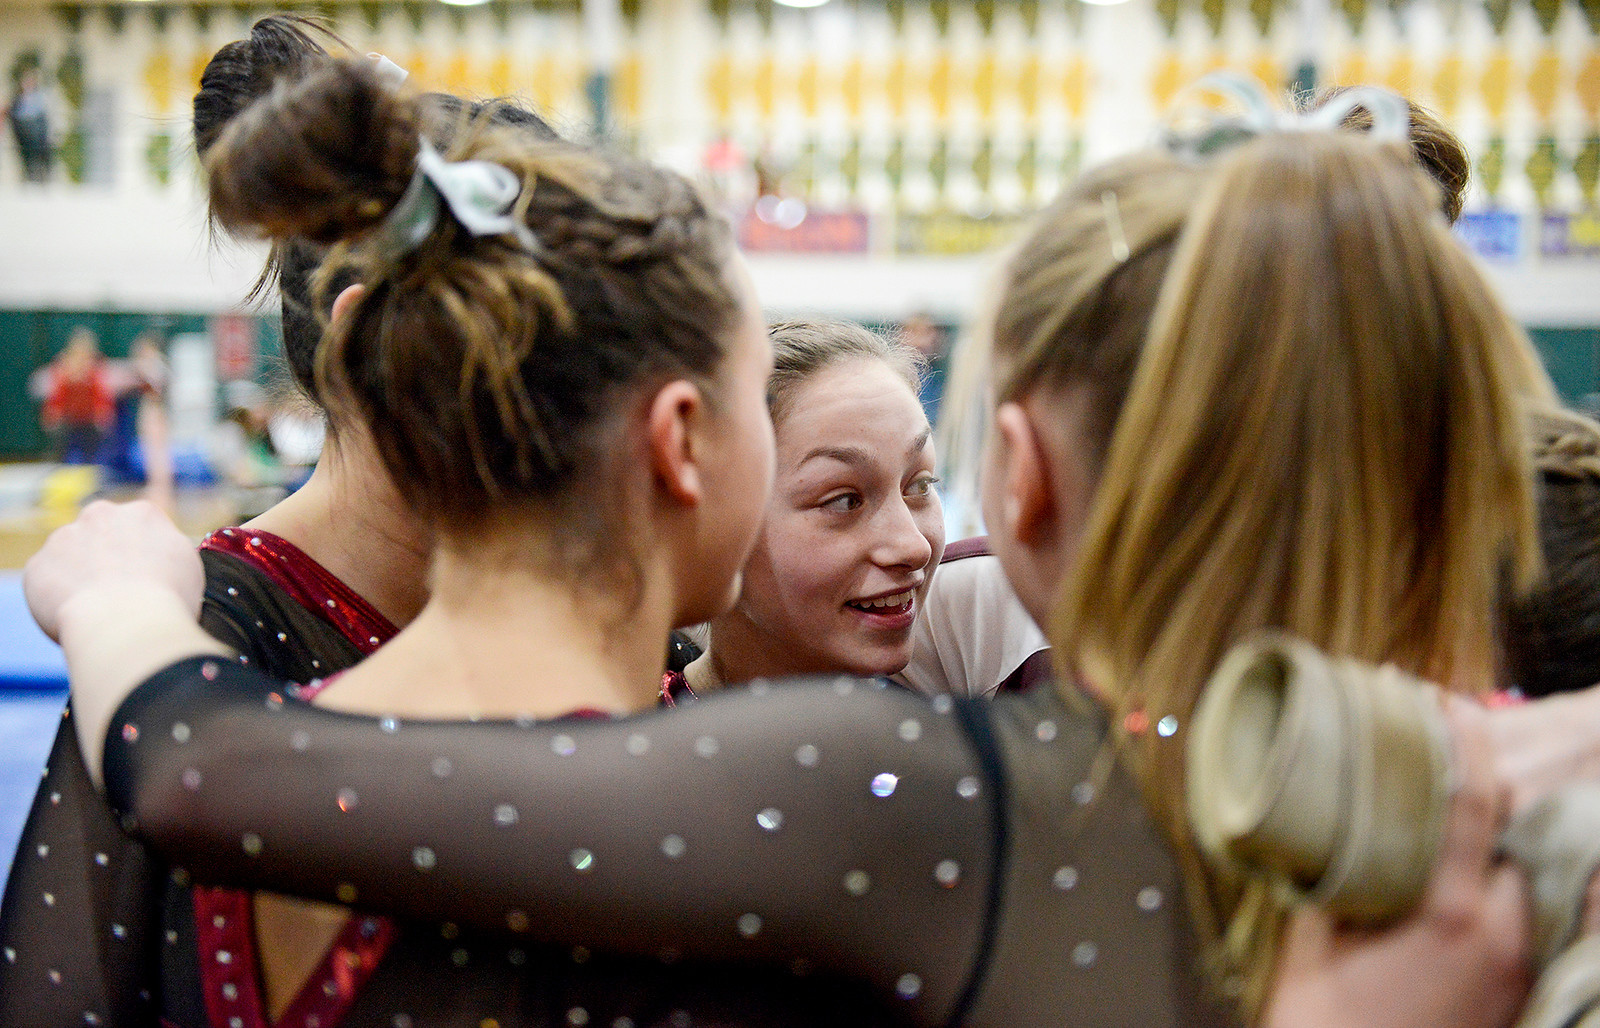 Prairie Ridge Nikki Barrs (cq), center, and her team talk about strategy for the balance beam prior to the third rotation at the IHSA girls gymnastics sectional at Fremd High School on Tuesday, Feb. 7, 2017. Barrs (cq) scored a 9.5 on balance beam.